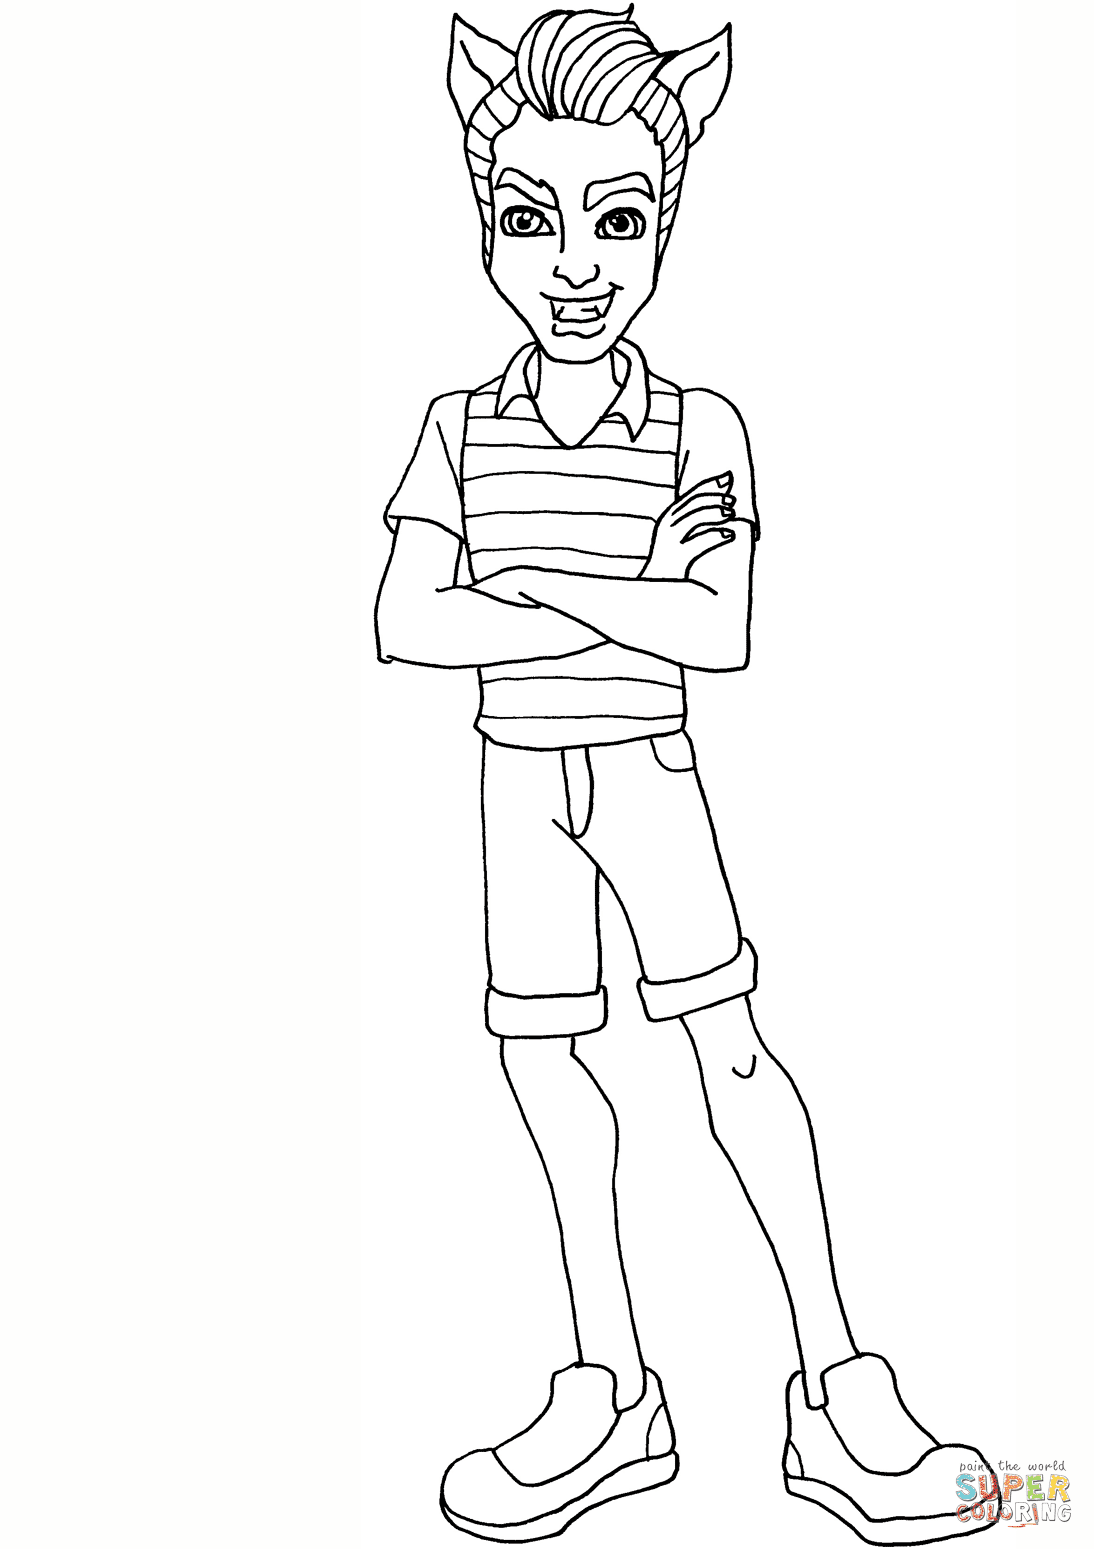 Clawd Wolf coloring page | Free Printable Coloring Pages